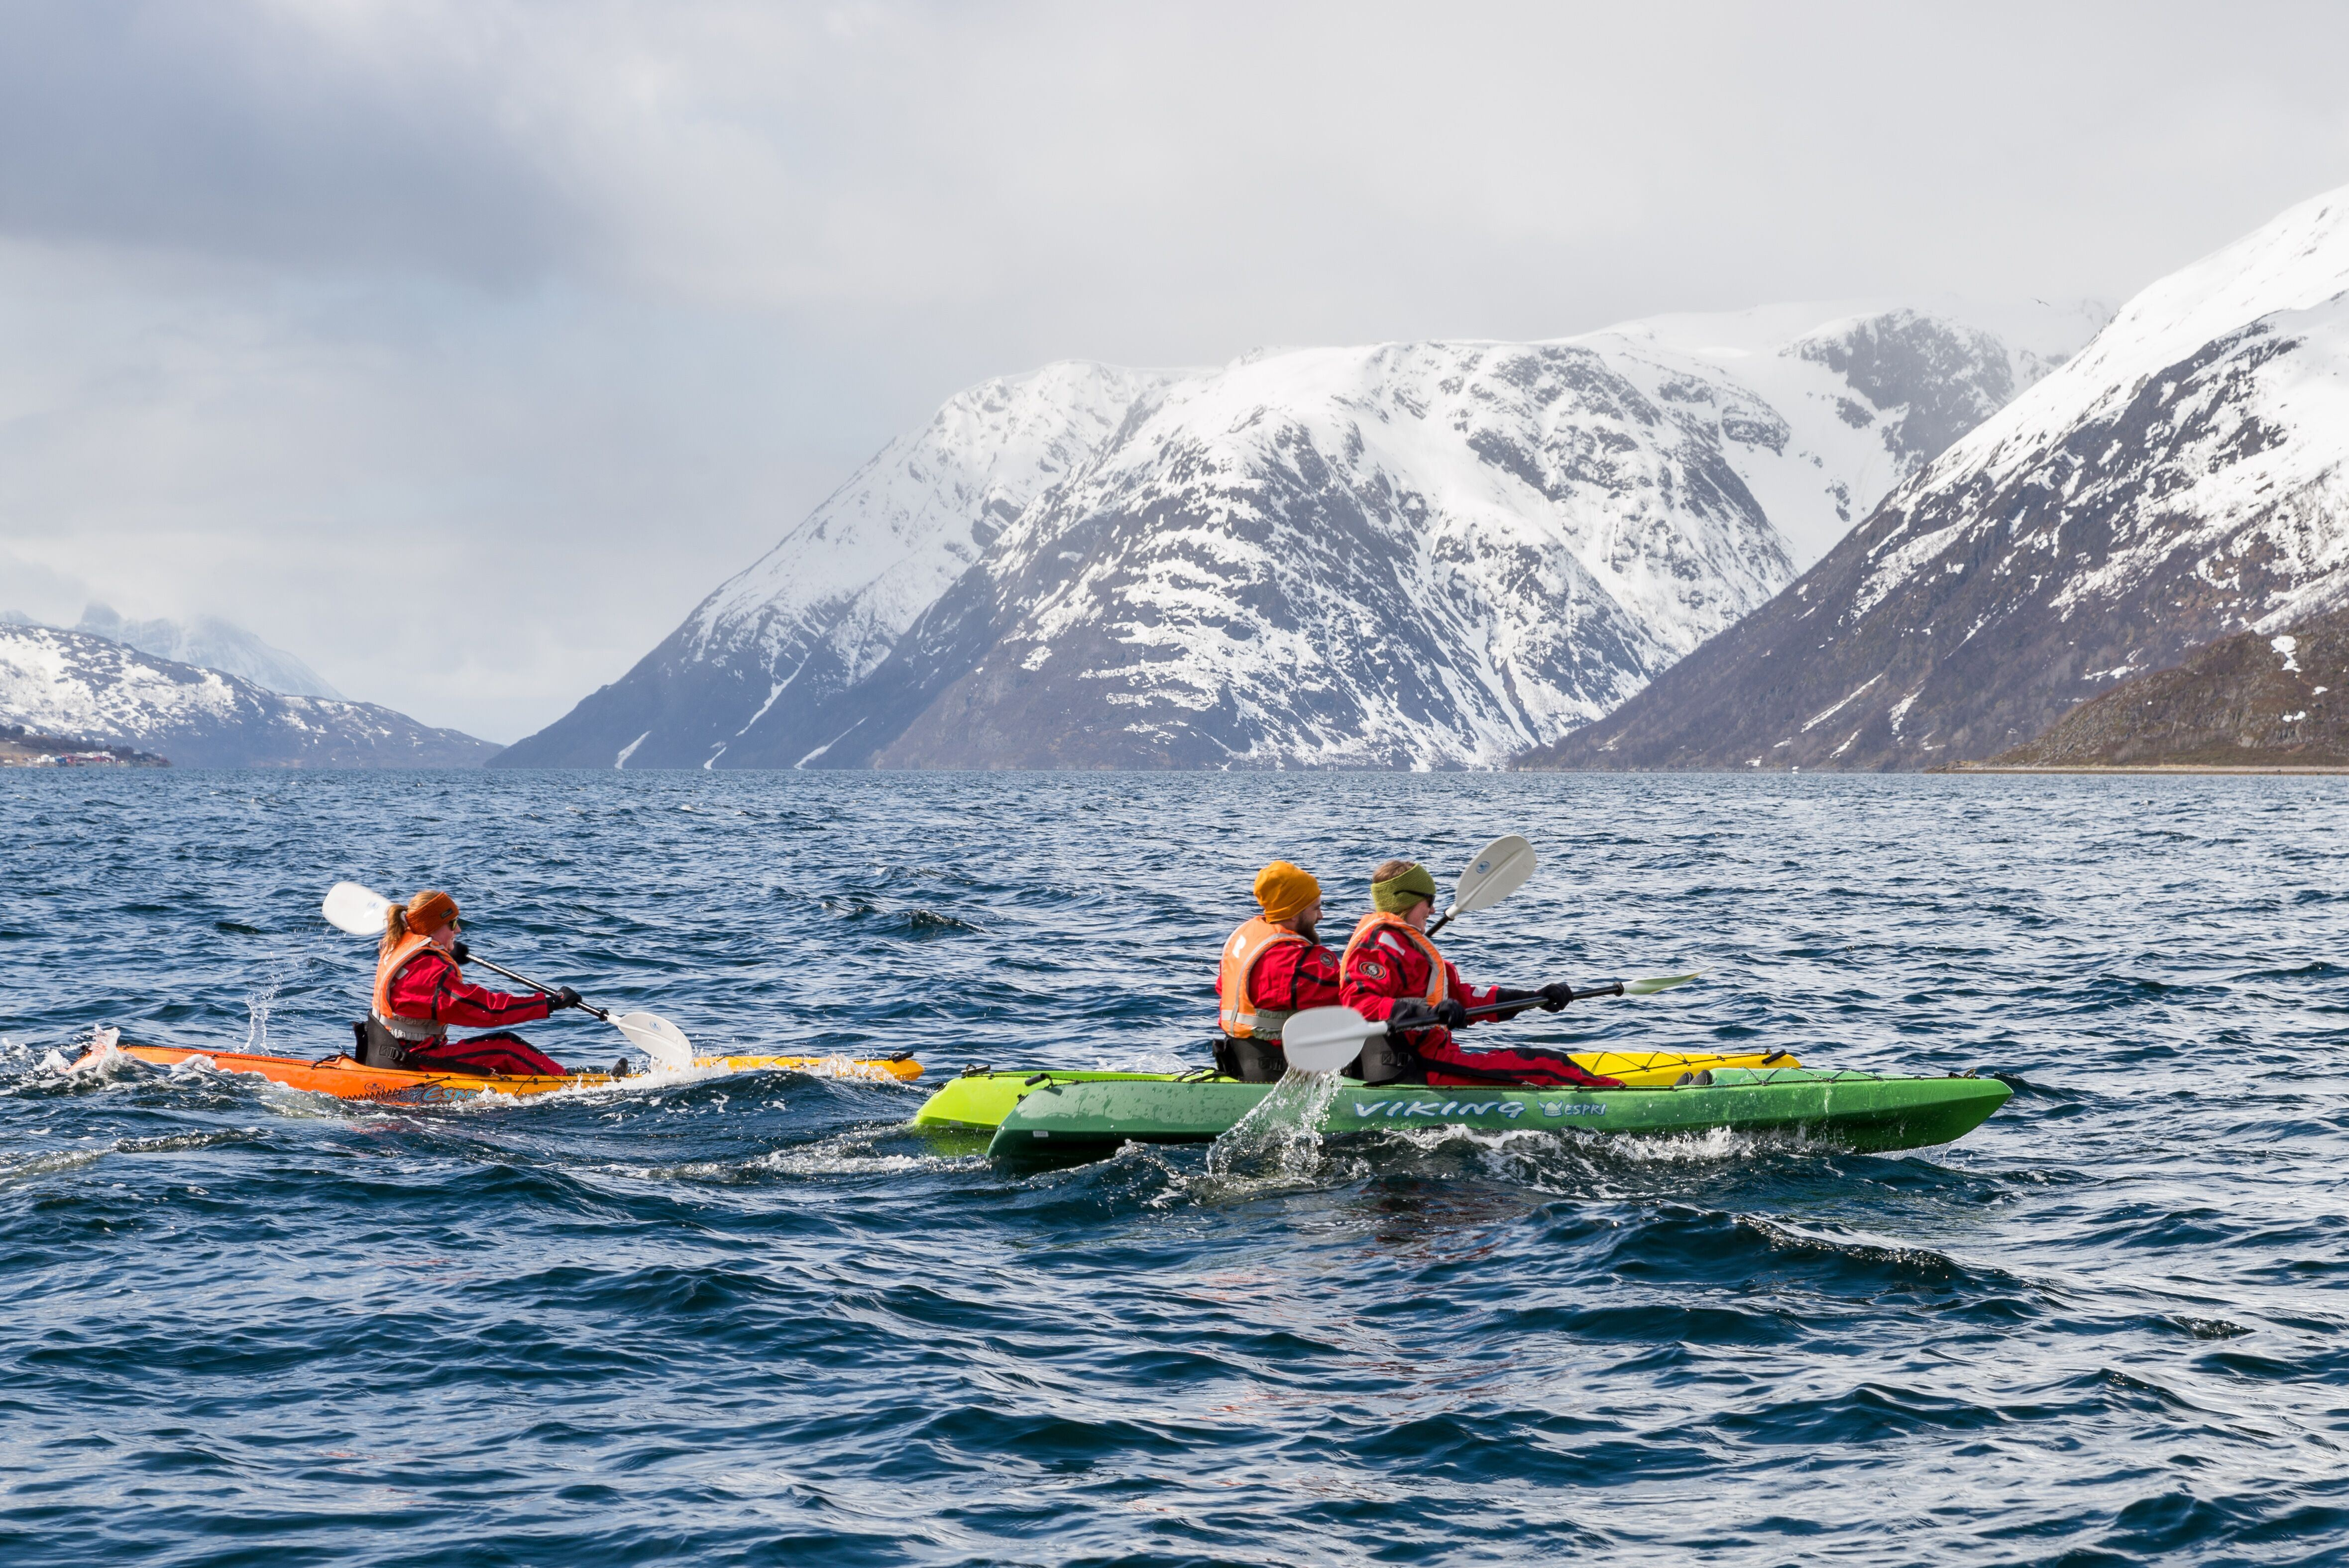 EXPLORE THE WILDFJORDS AND THE GLACIER WITH KAYAK